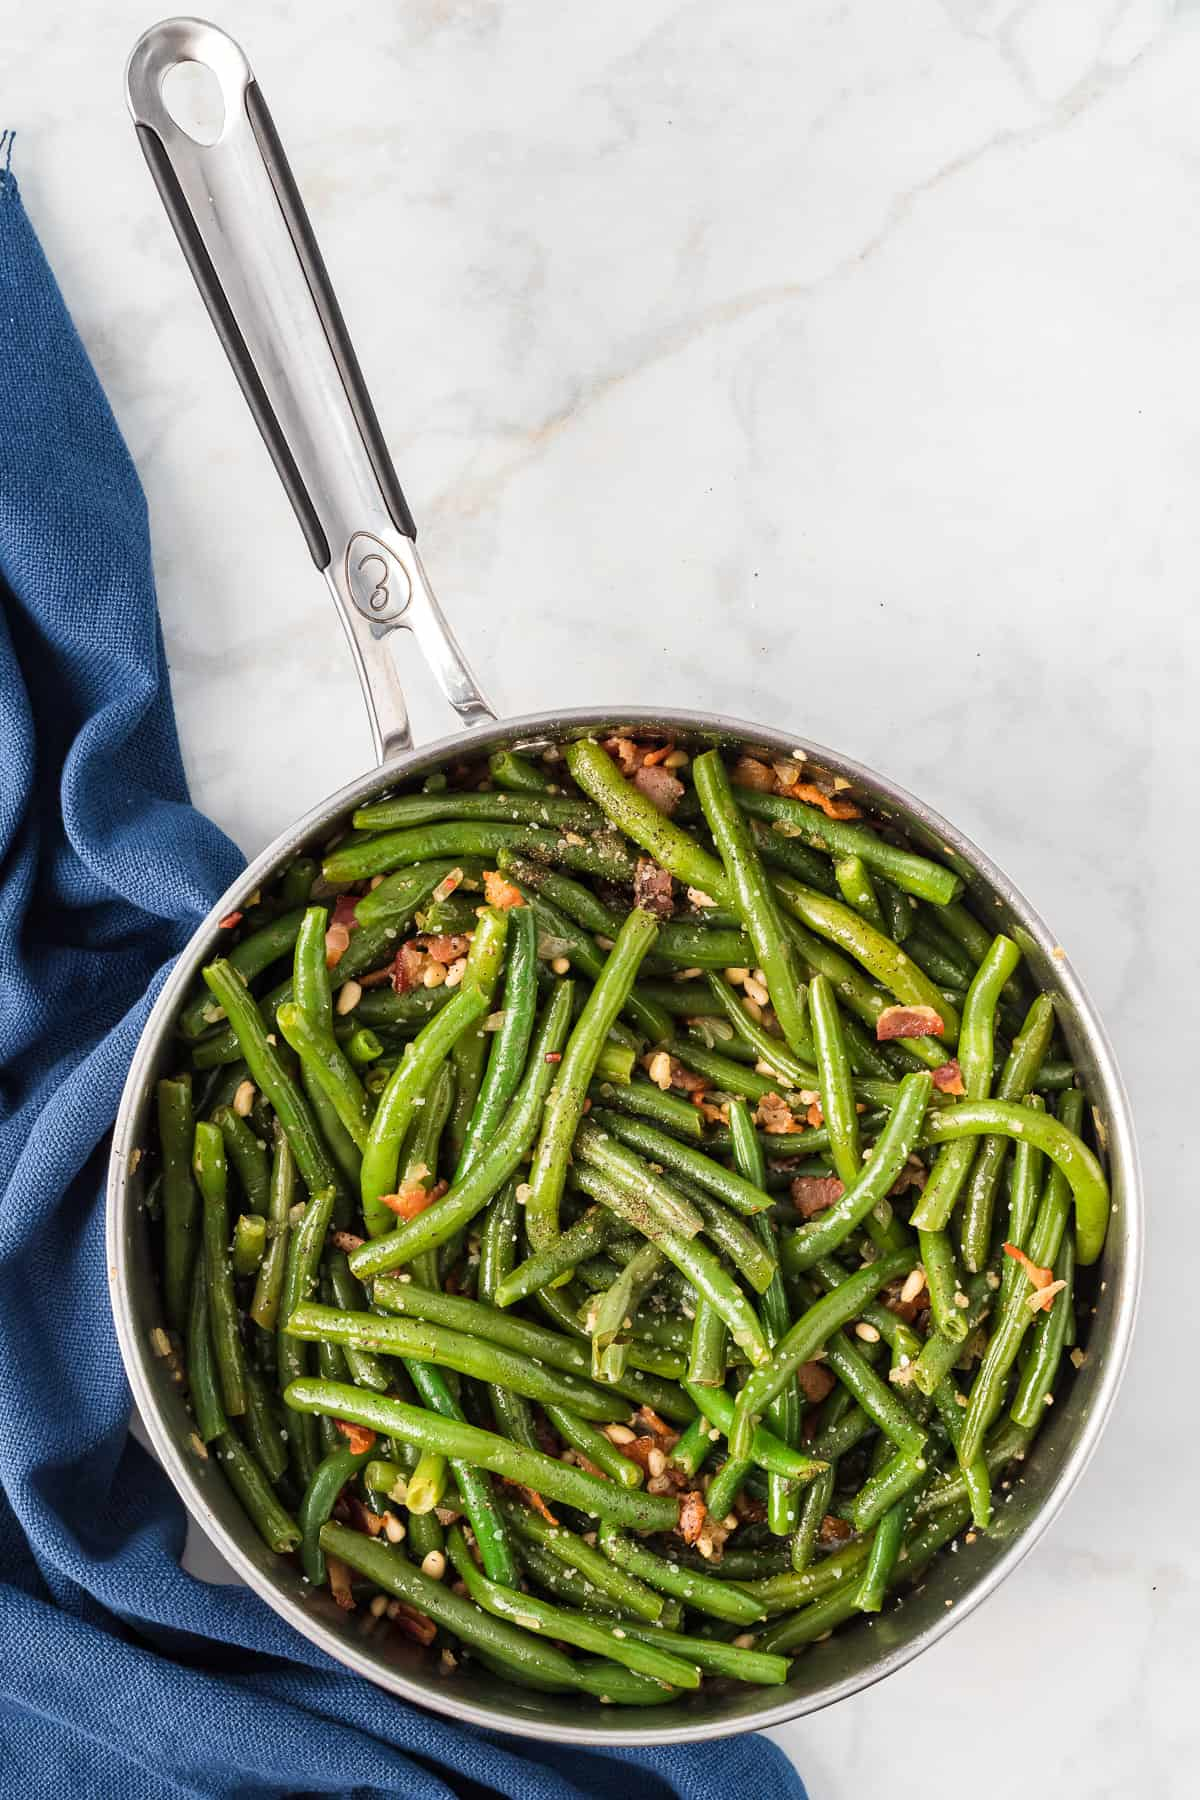 a large pan with al dente green beans.